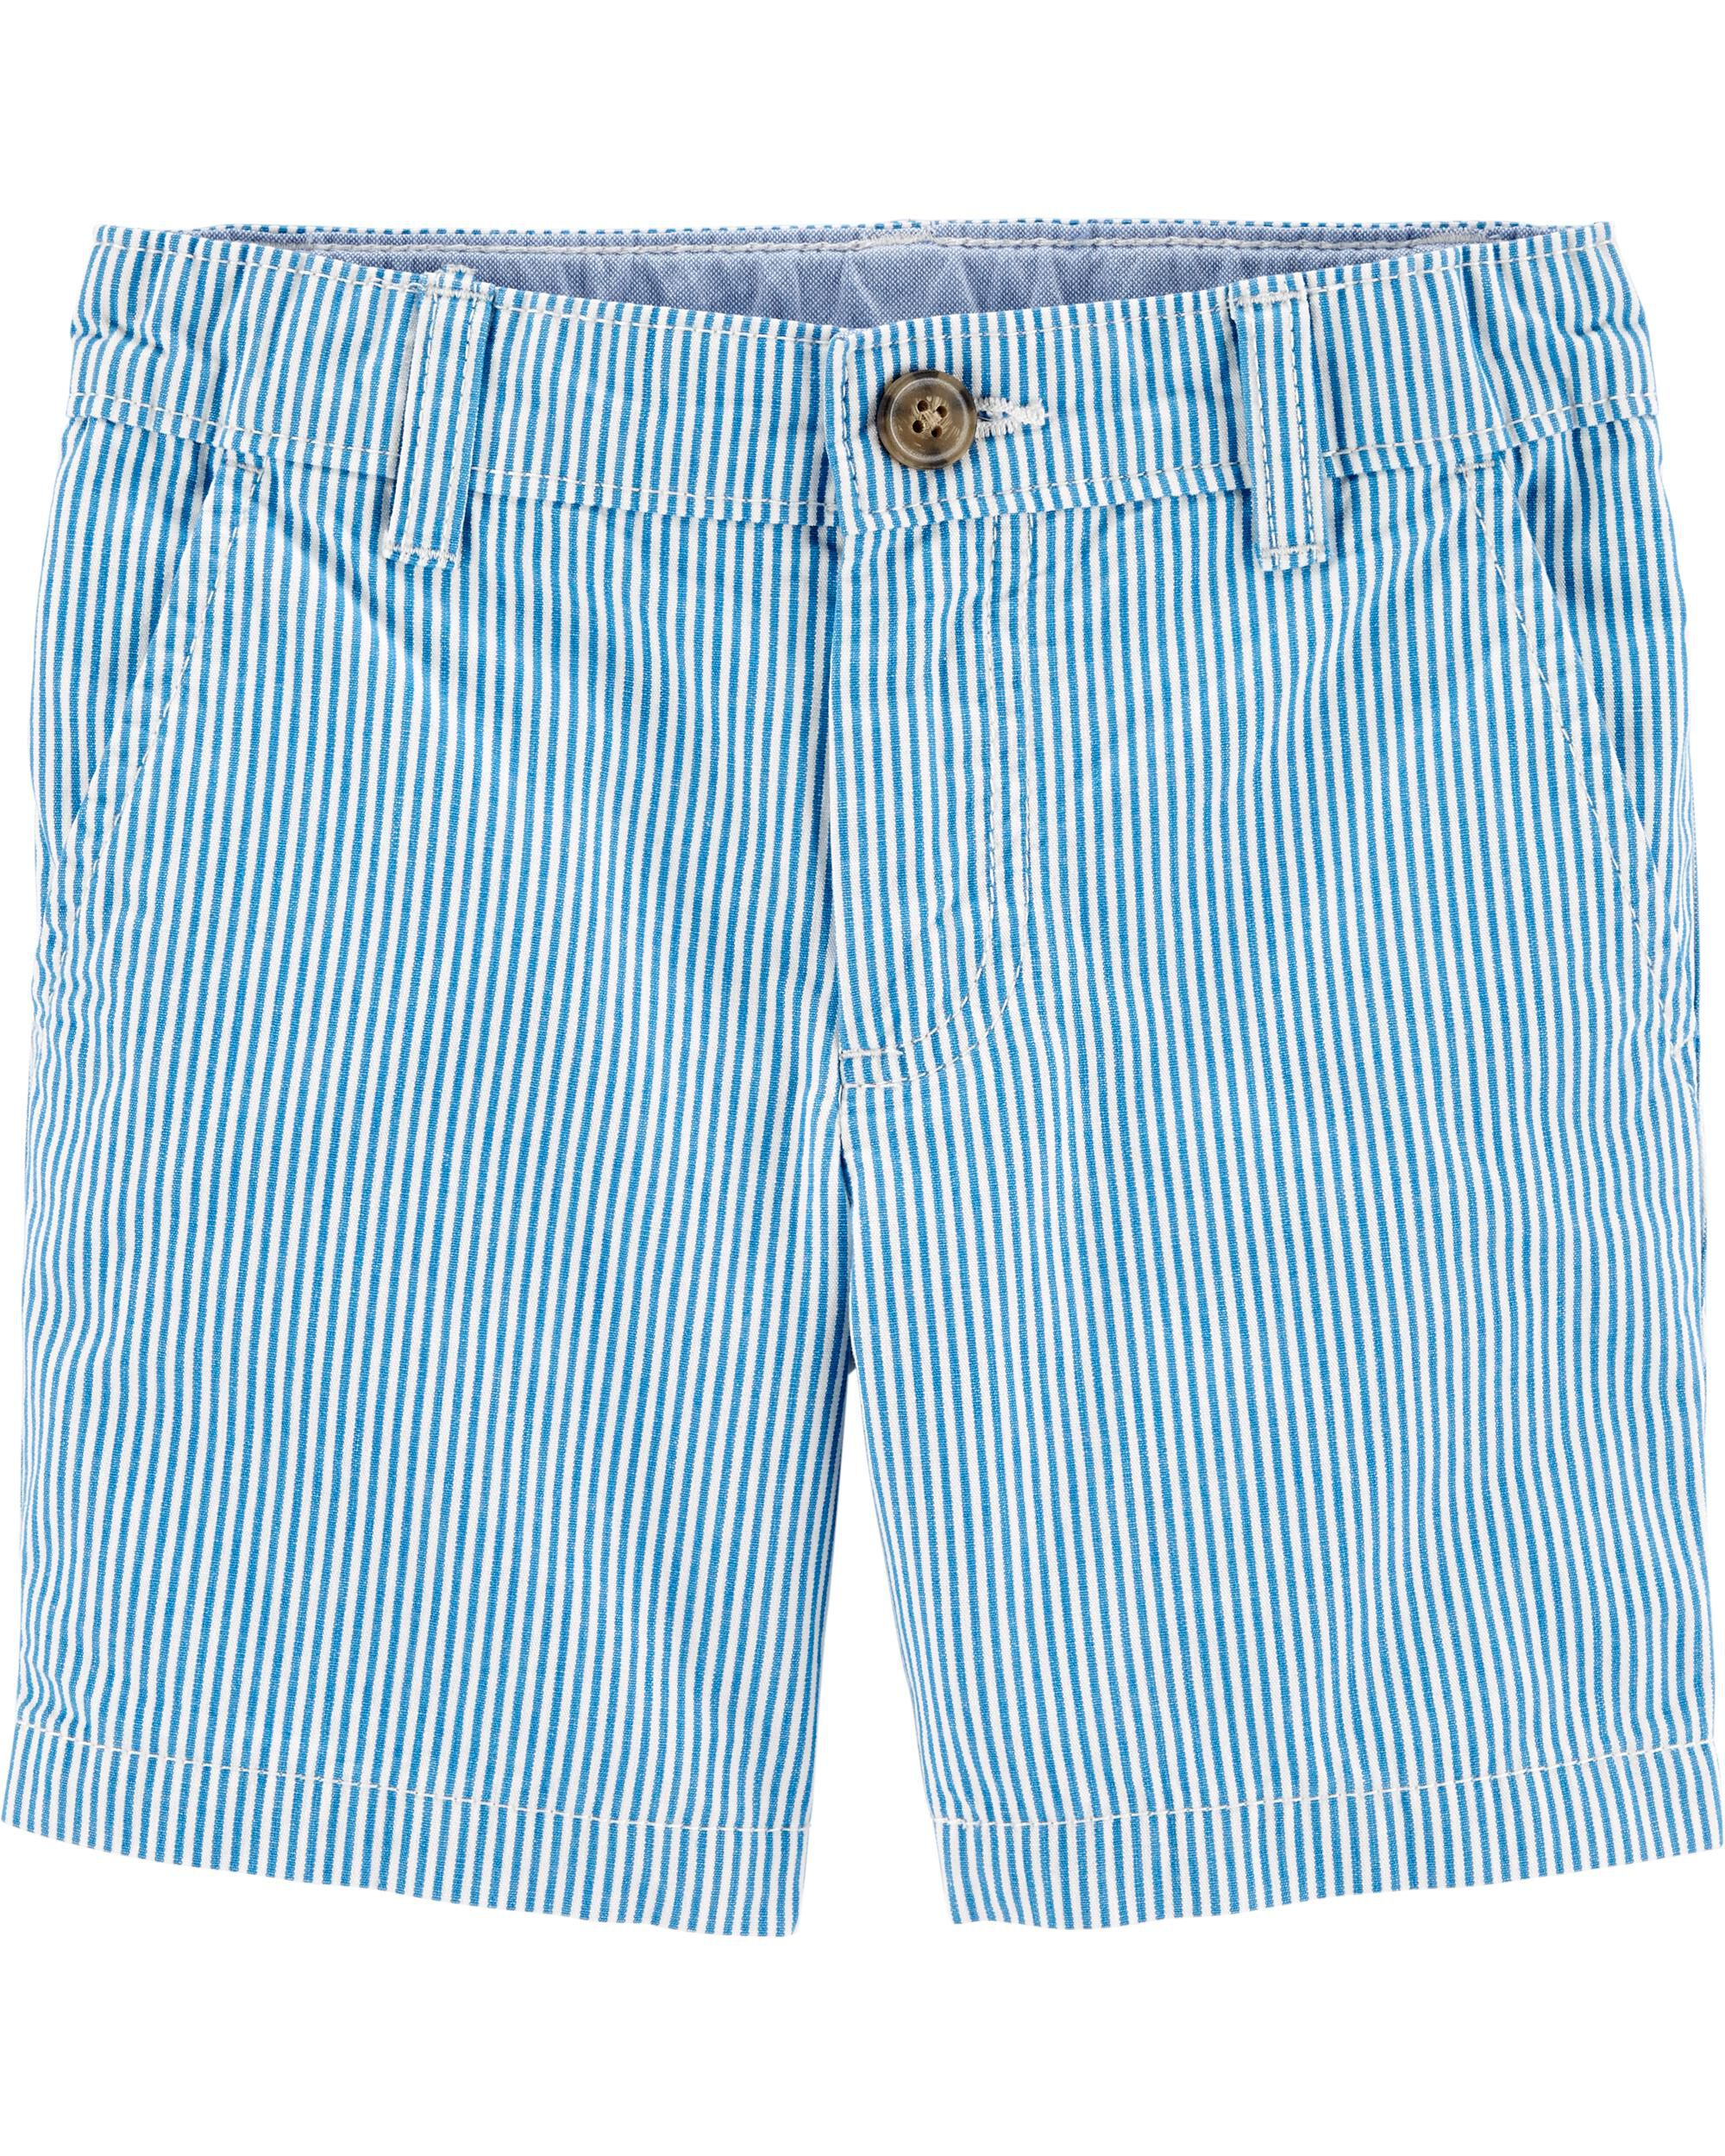 Striped Flat-Front Shorts